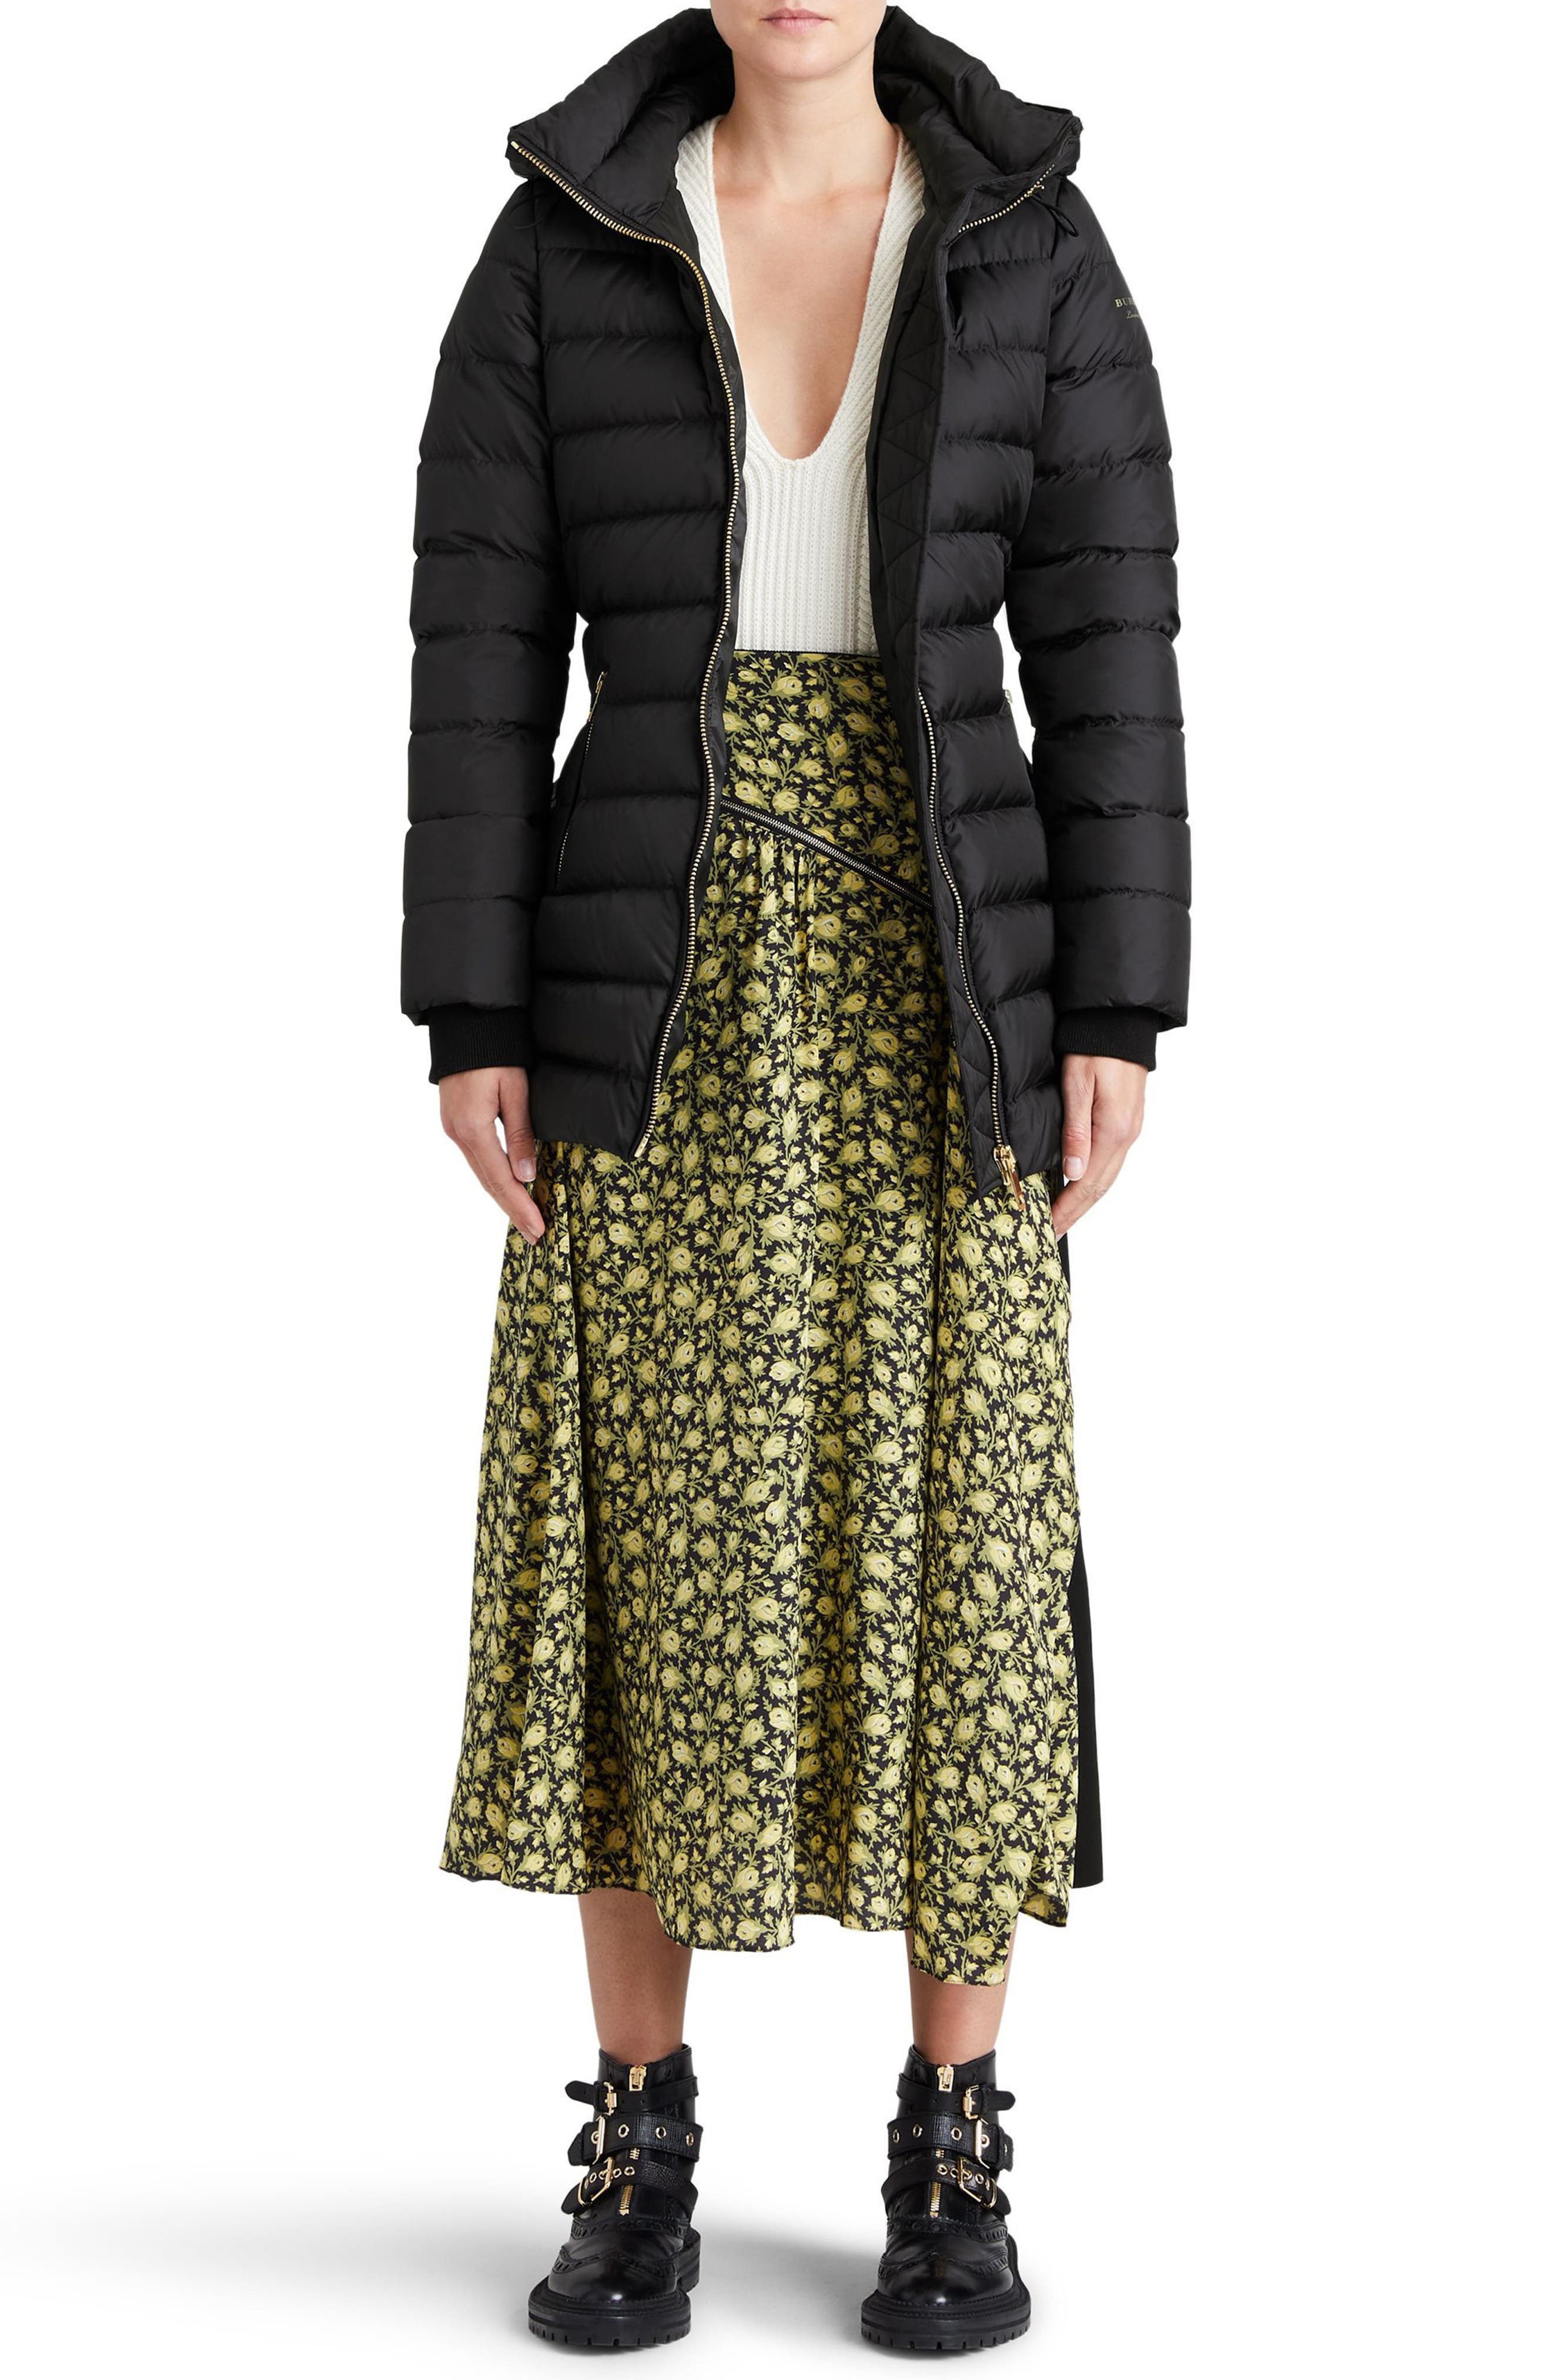 Limefield Hooded Puffer Coat,                             Alternate thumbnail 8, color,                             001